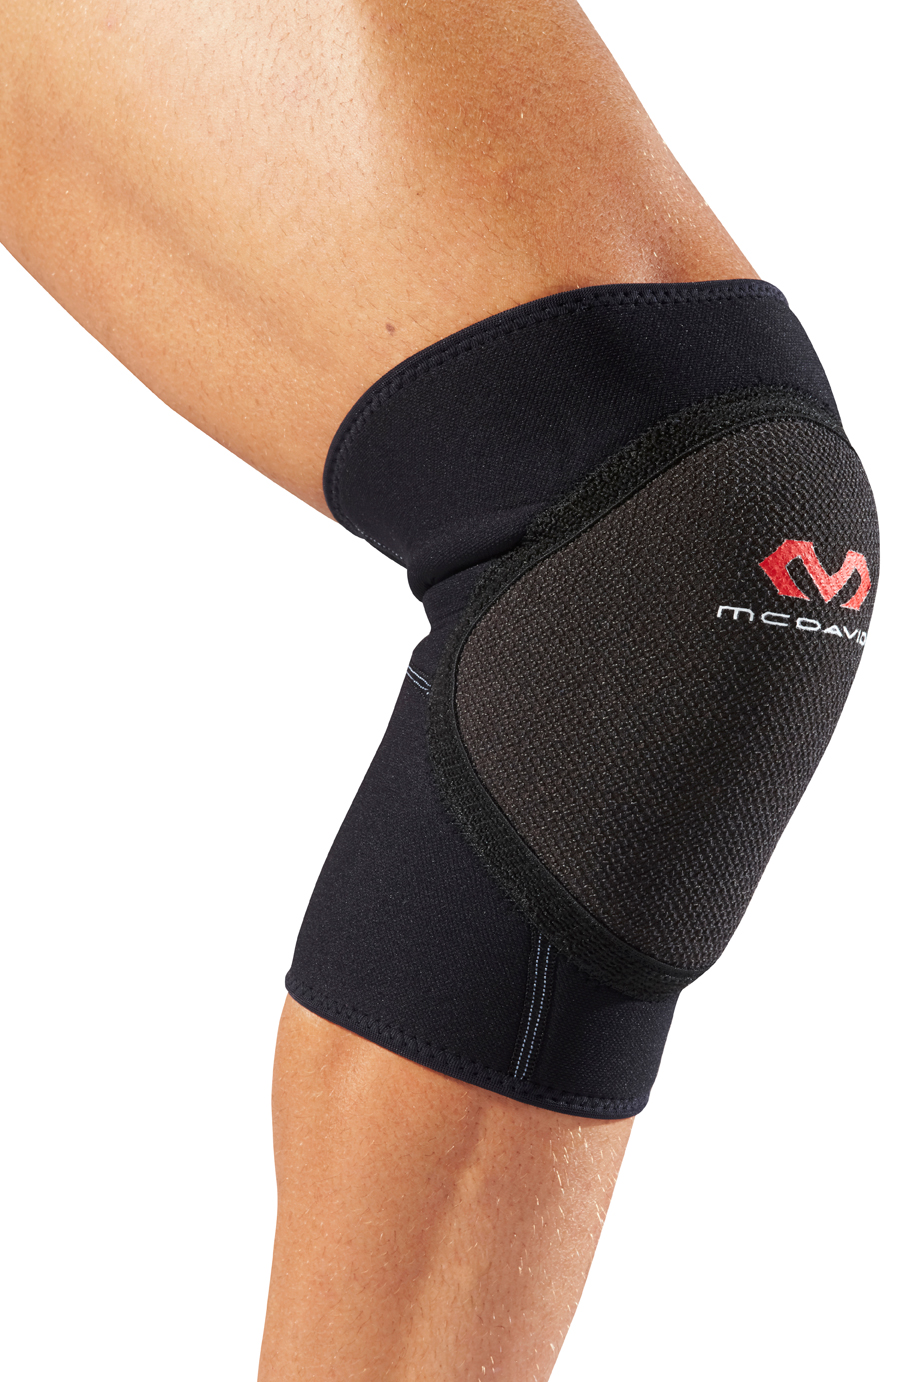 Handball Knee Pad- McDavid